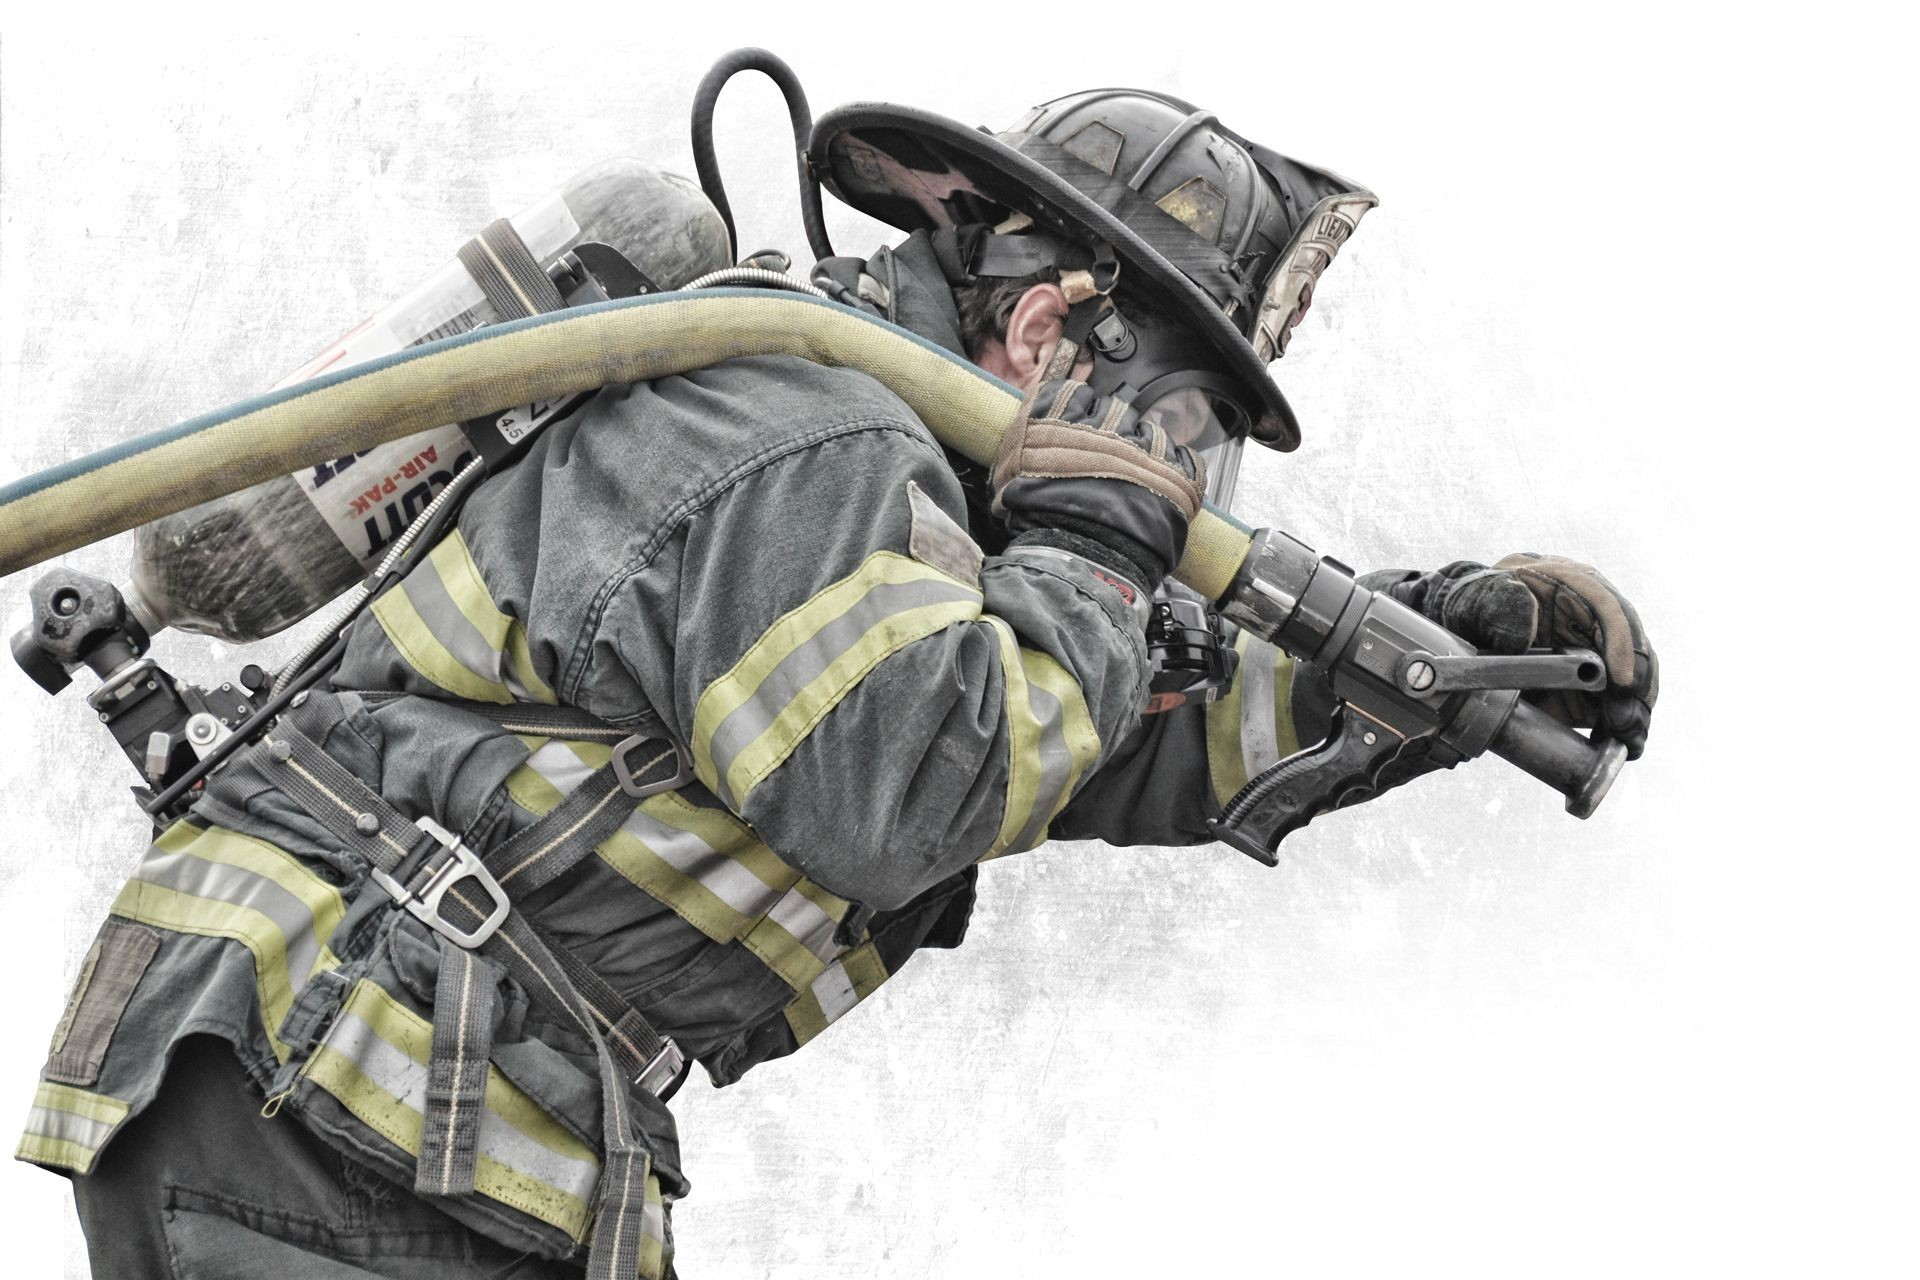 Free Firefighter Wallpaper for Phone 1920×1280 Firefighting Wallpapers (37  Wallpapers)   Adorable